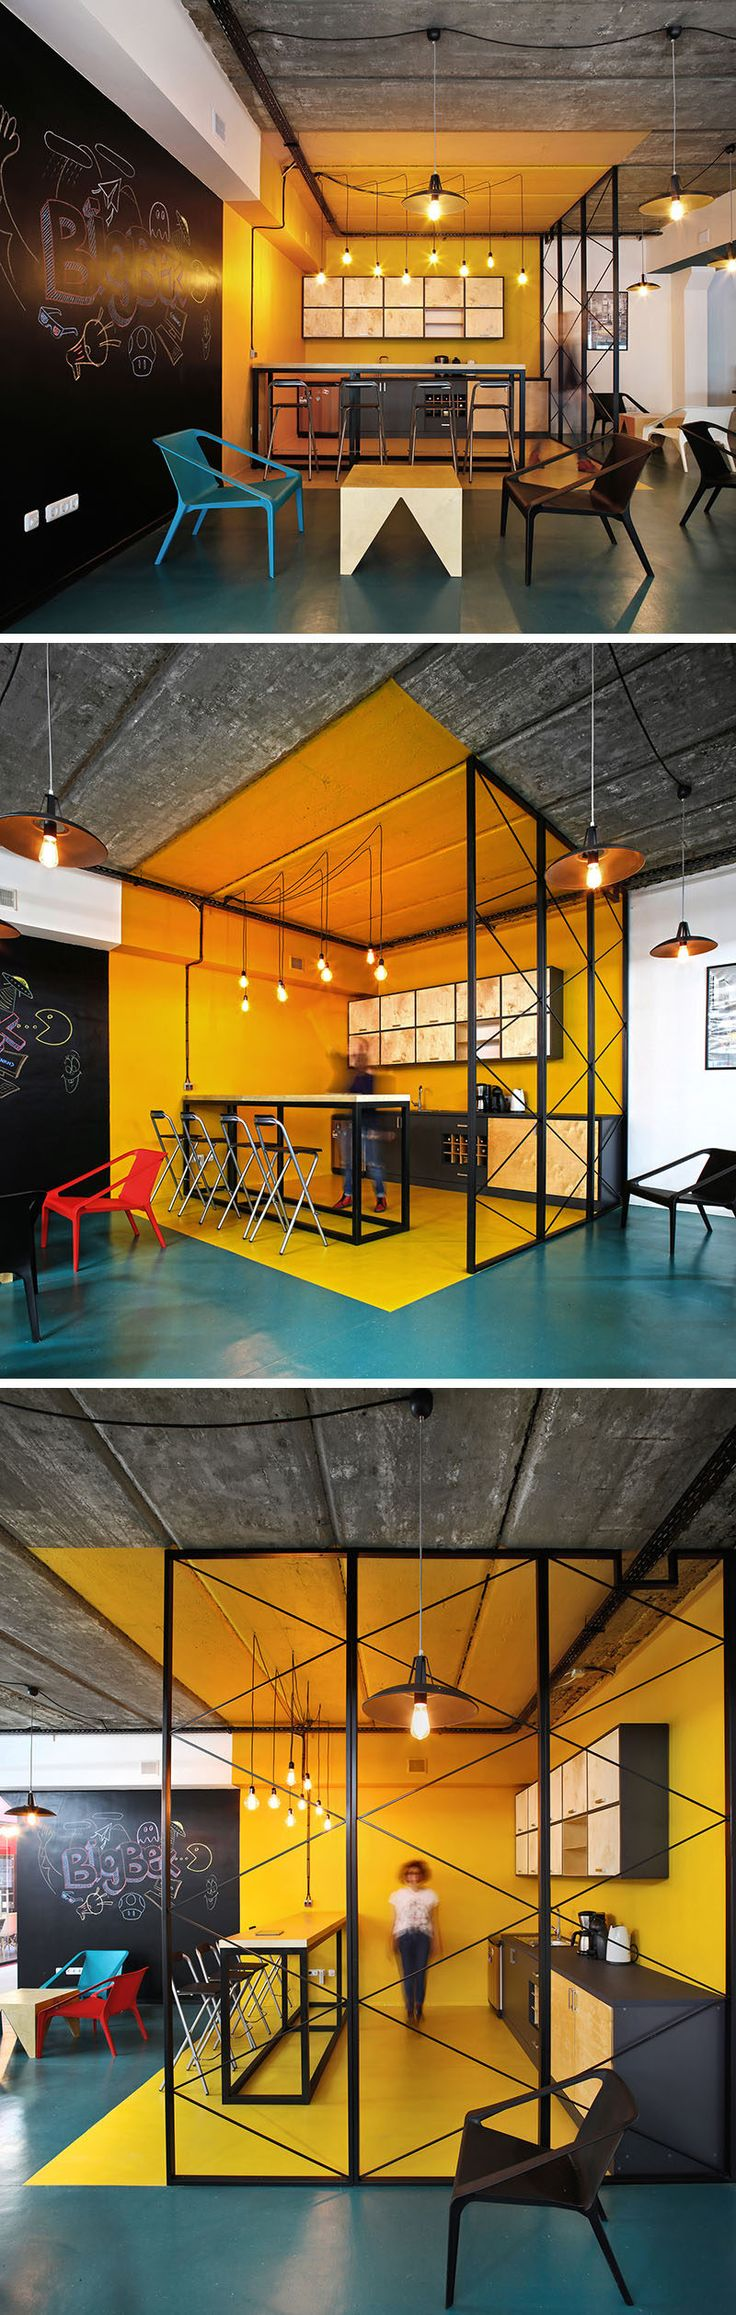 Best 25 Creative office space ideas on Pinterest Office space